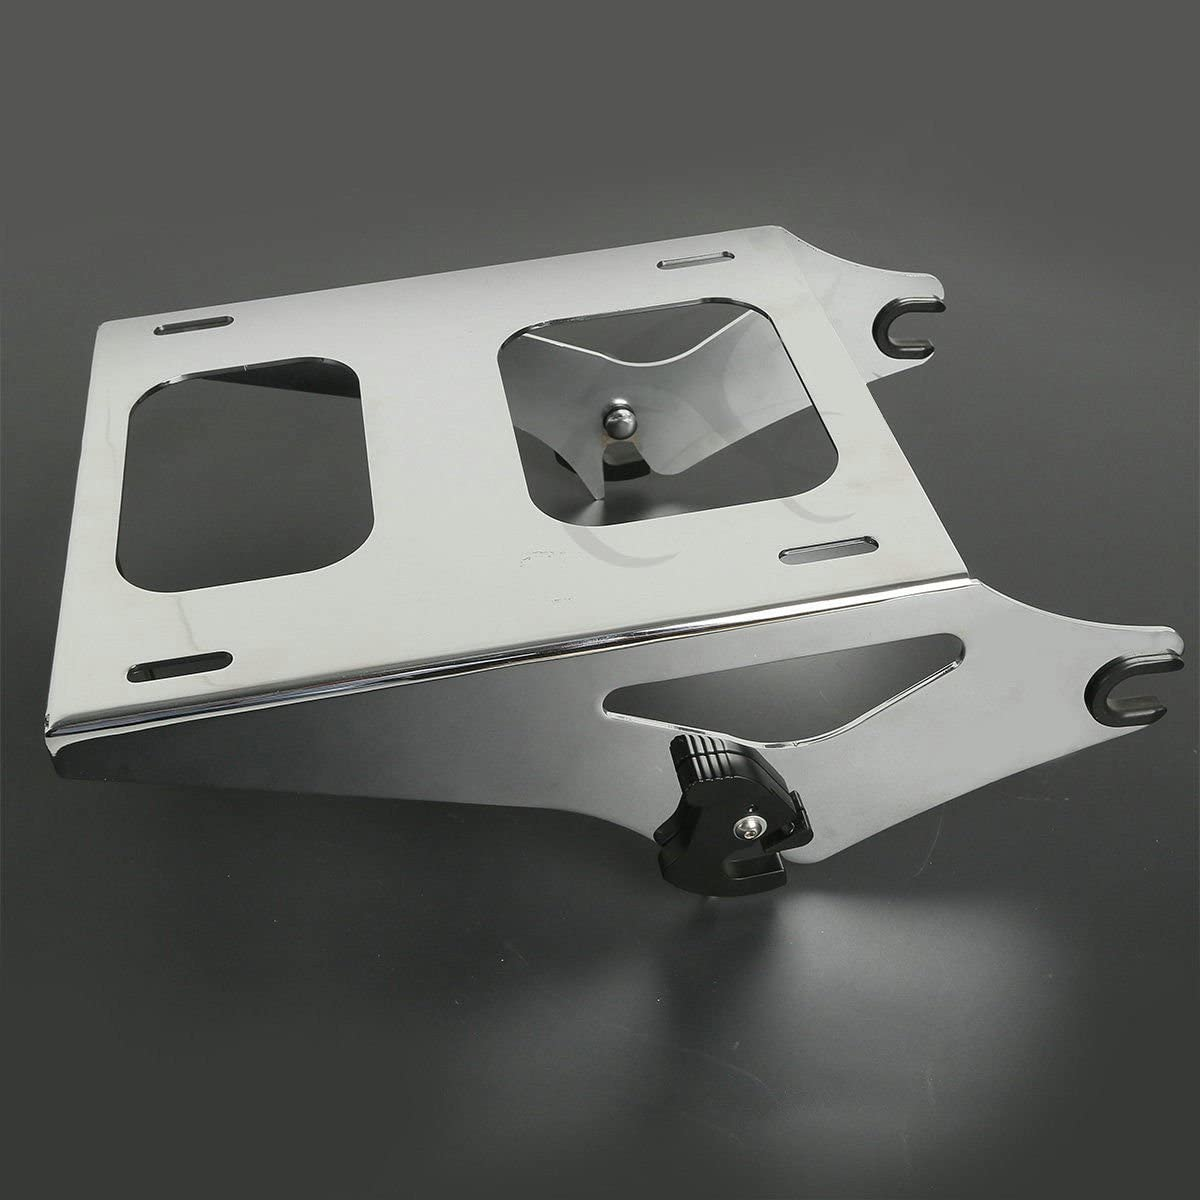 XFMT 4 Point Docking Hardware Luggage Rack Compatible with Harley HD Road Electra Glide 15 16 18